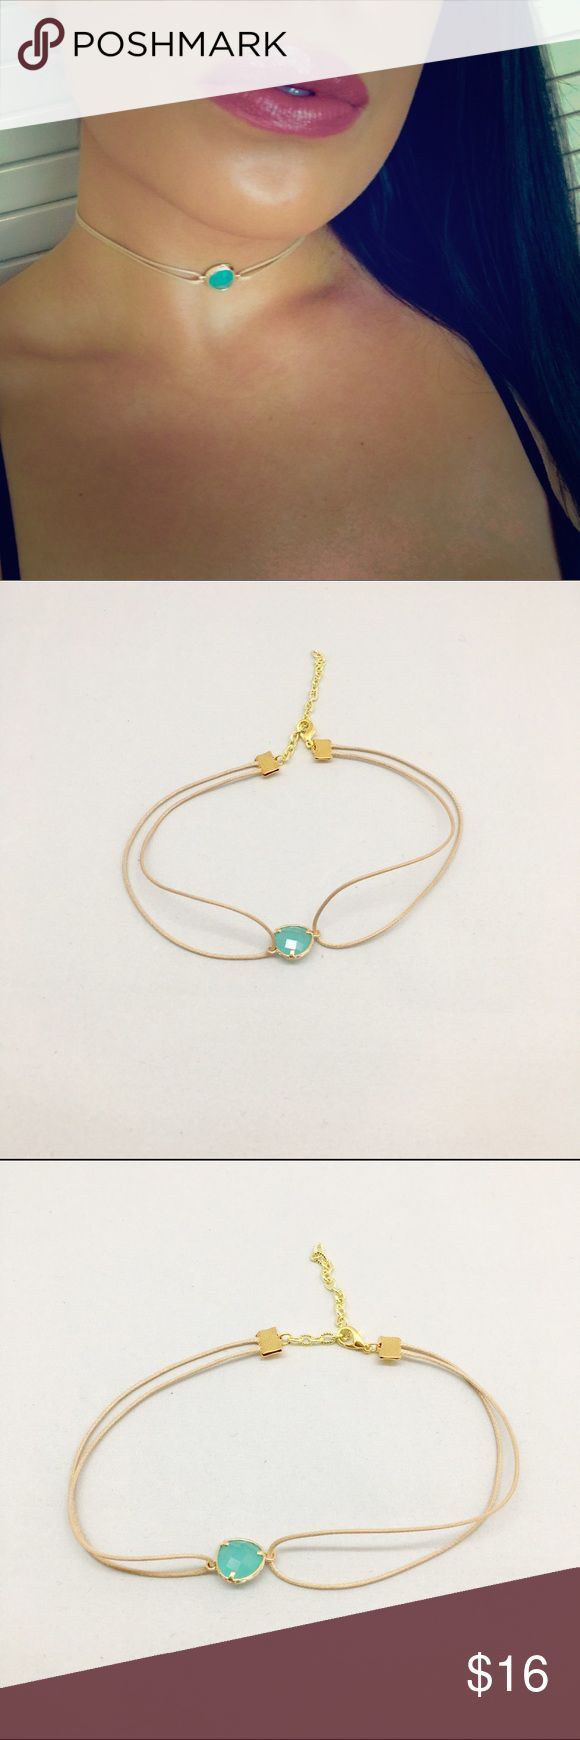 "Aurora Choker Beautiful aqua stone set in gold material with a nude necklace. Measures 11""-14"" beautiful to layer or wear alone. NOT FREE PEOLE, Price firm unless bundled. Free People Jewelry Necklaces"